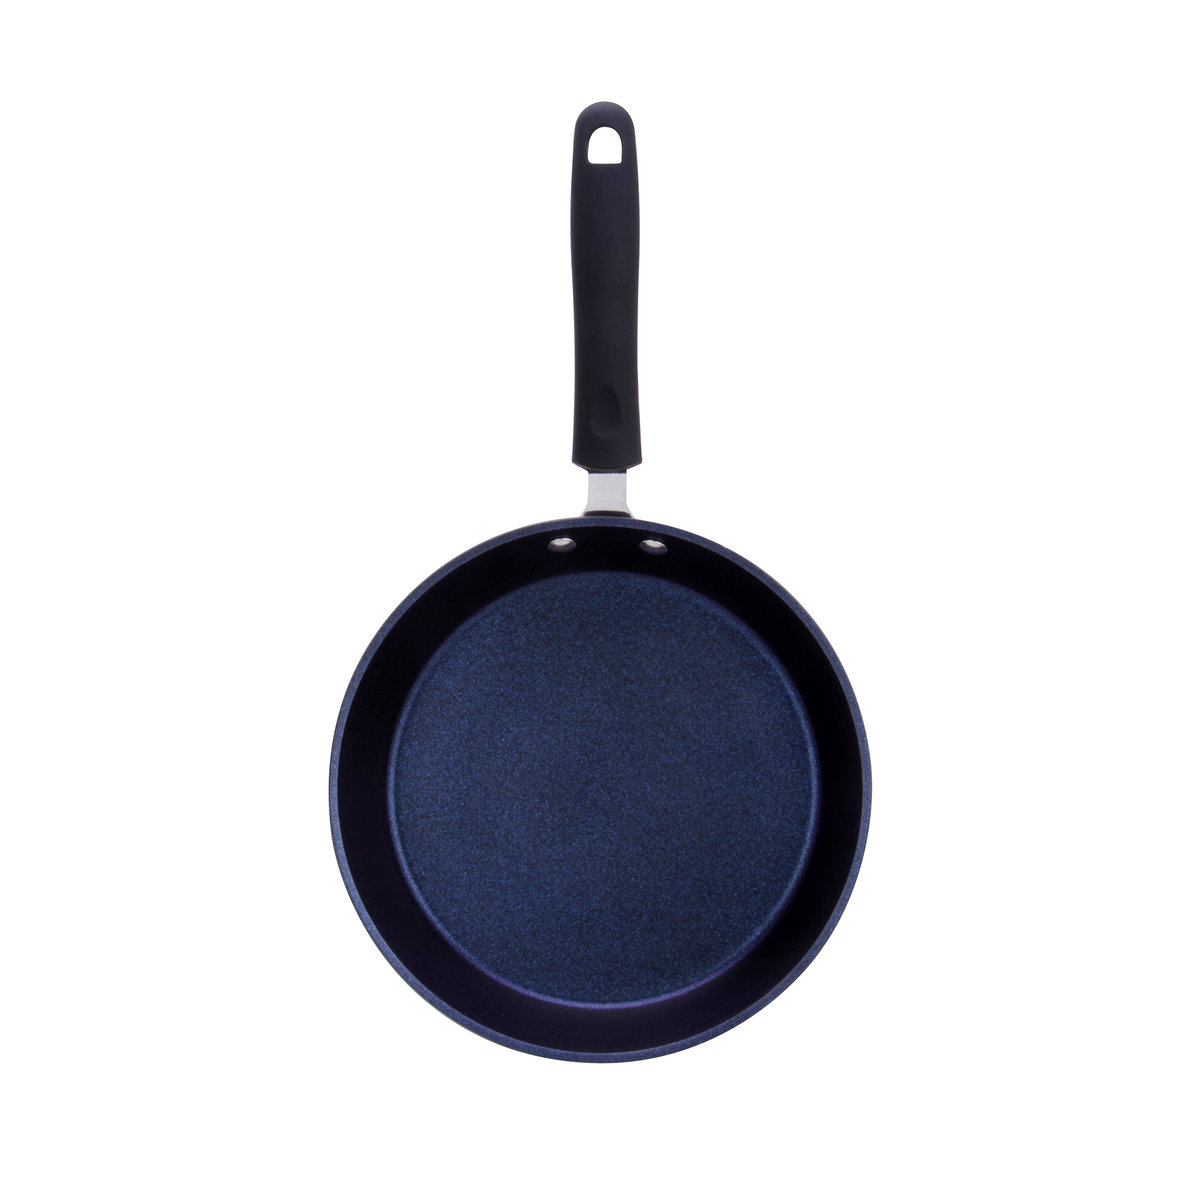 24cm non stick coating fry pan with induction bott - FP24NS